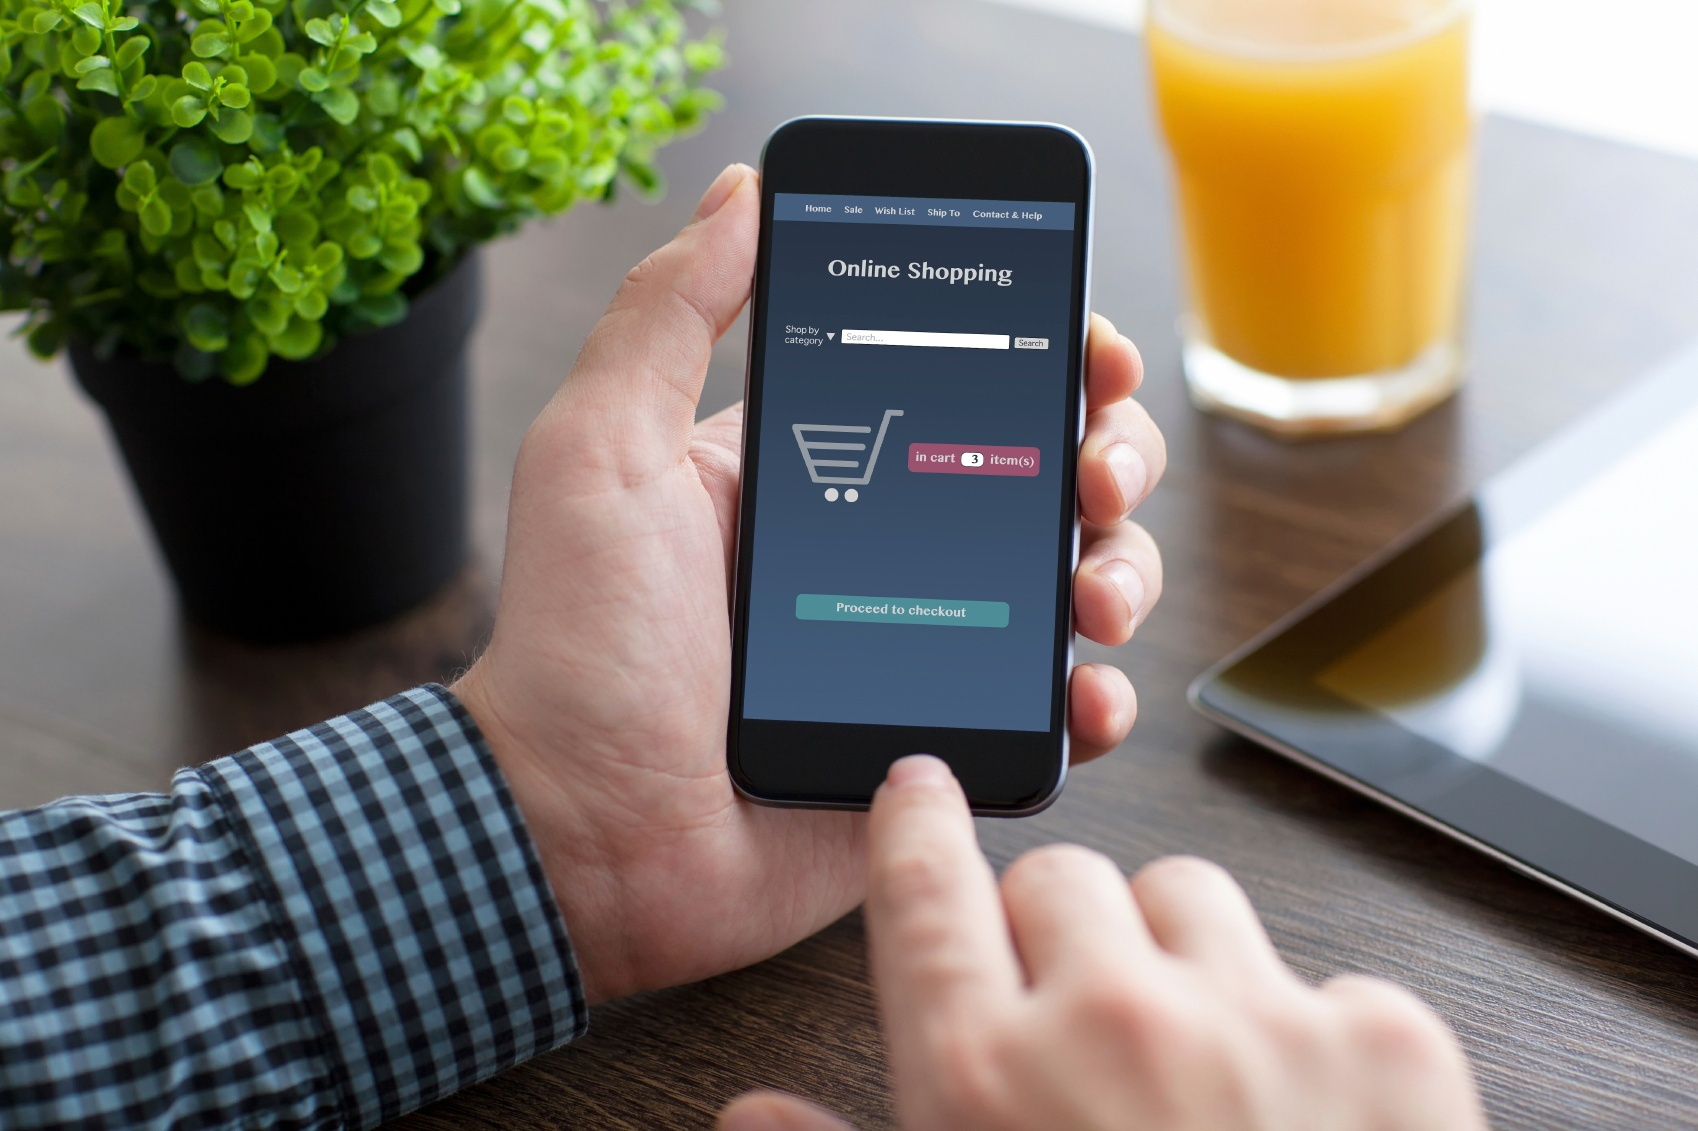 Top 3 ecommerce mobile  marketing trends to look out for - Hit Search